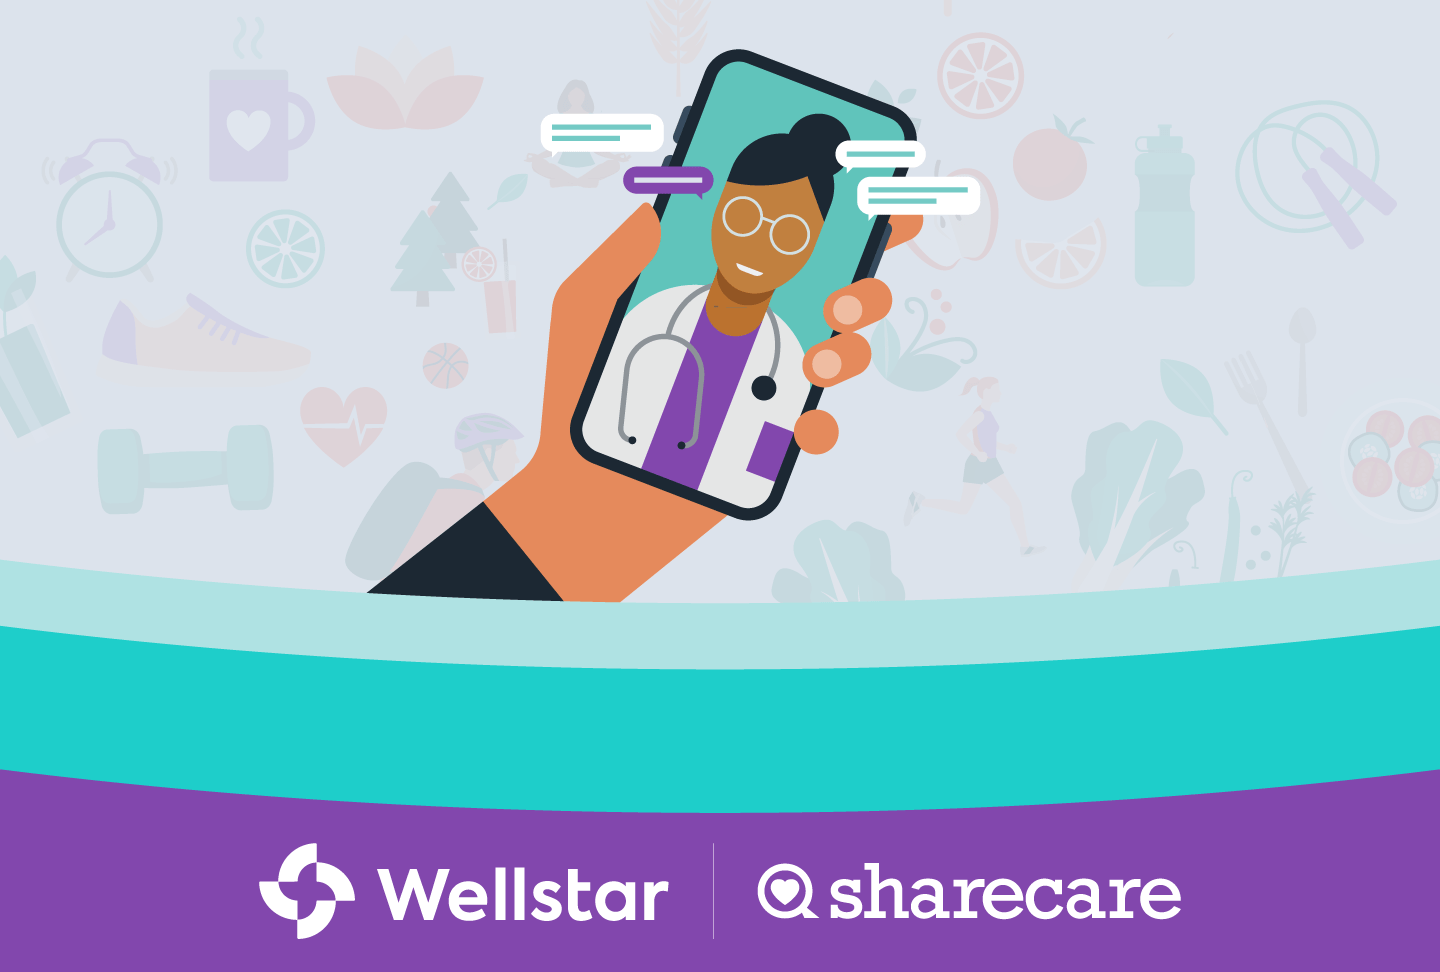 Wellstar Sharecare Enter Partnership Delivering Personalized Health Wellness Platform Image